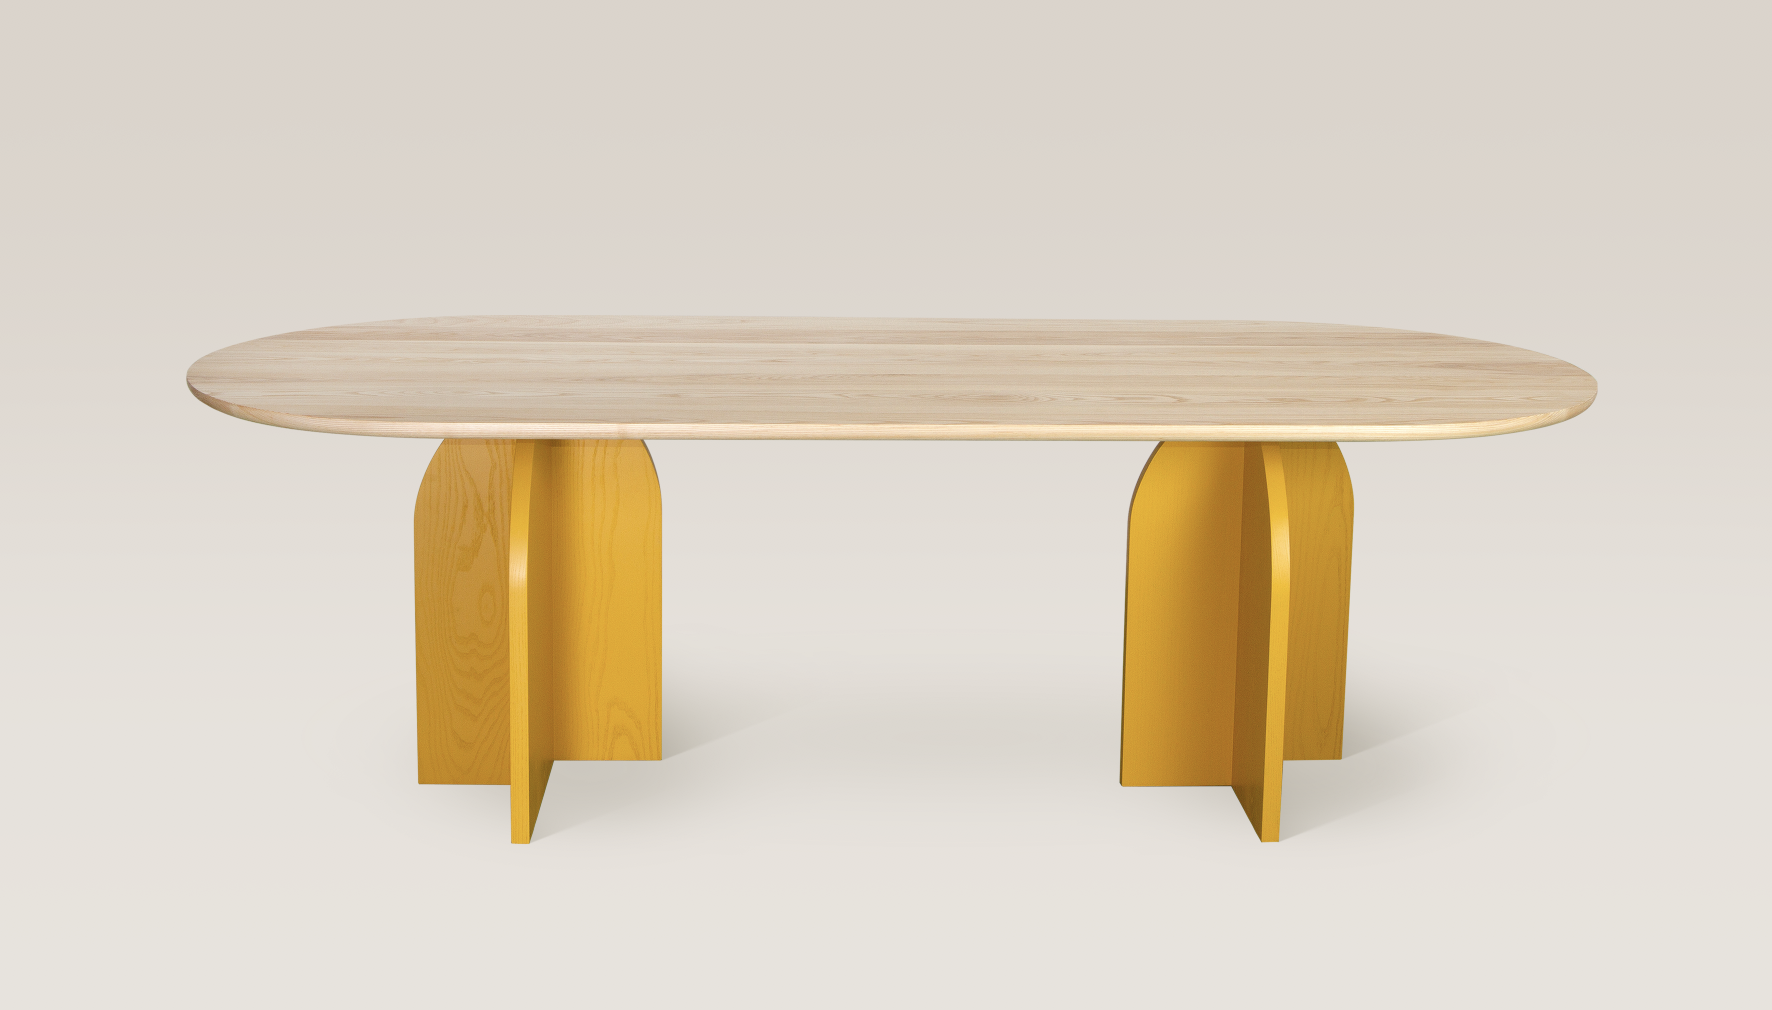 Cloverdale Dining Table →